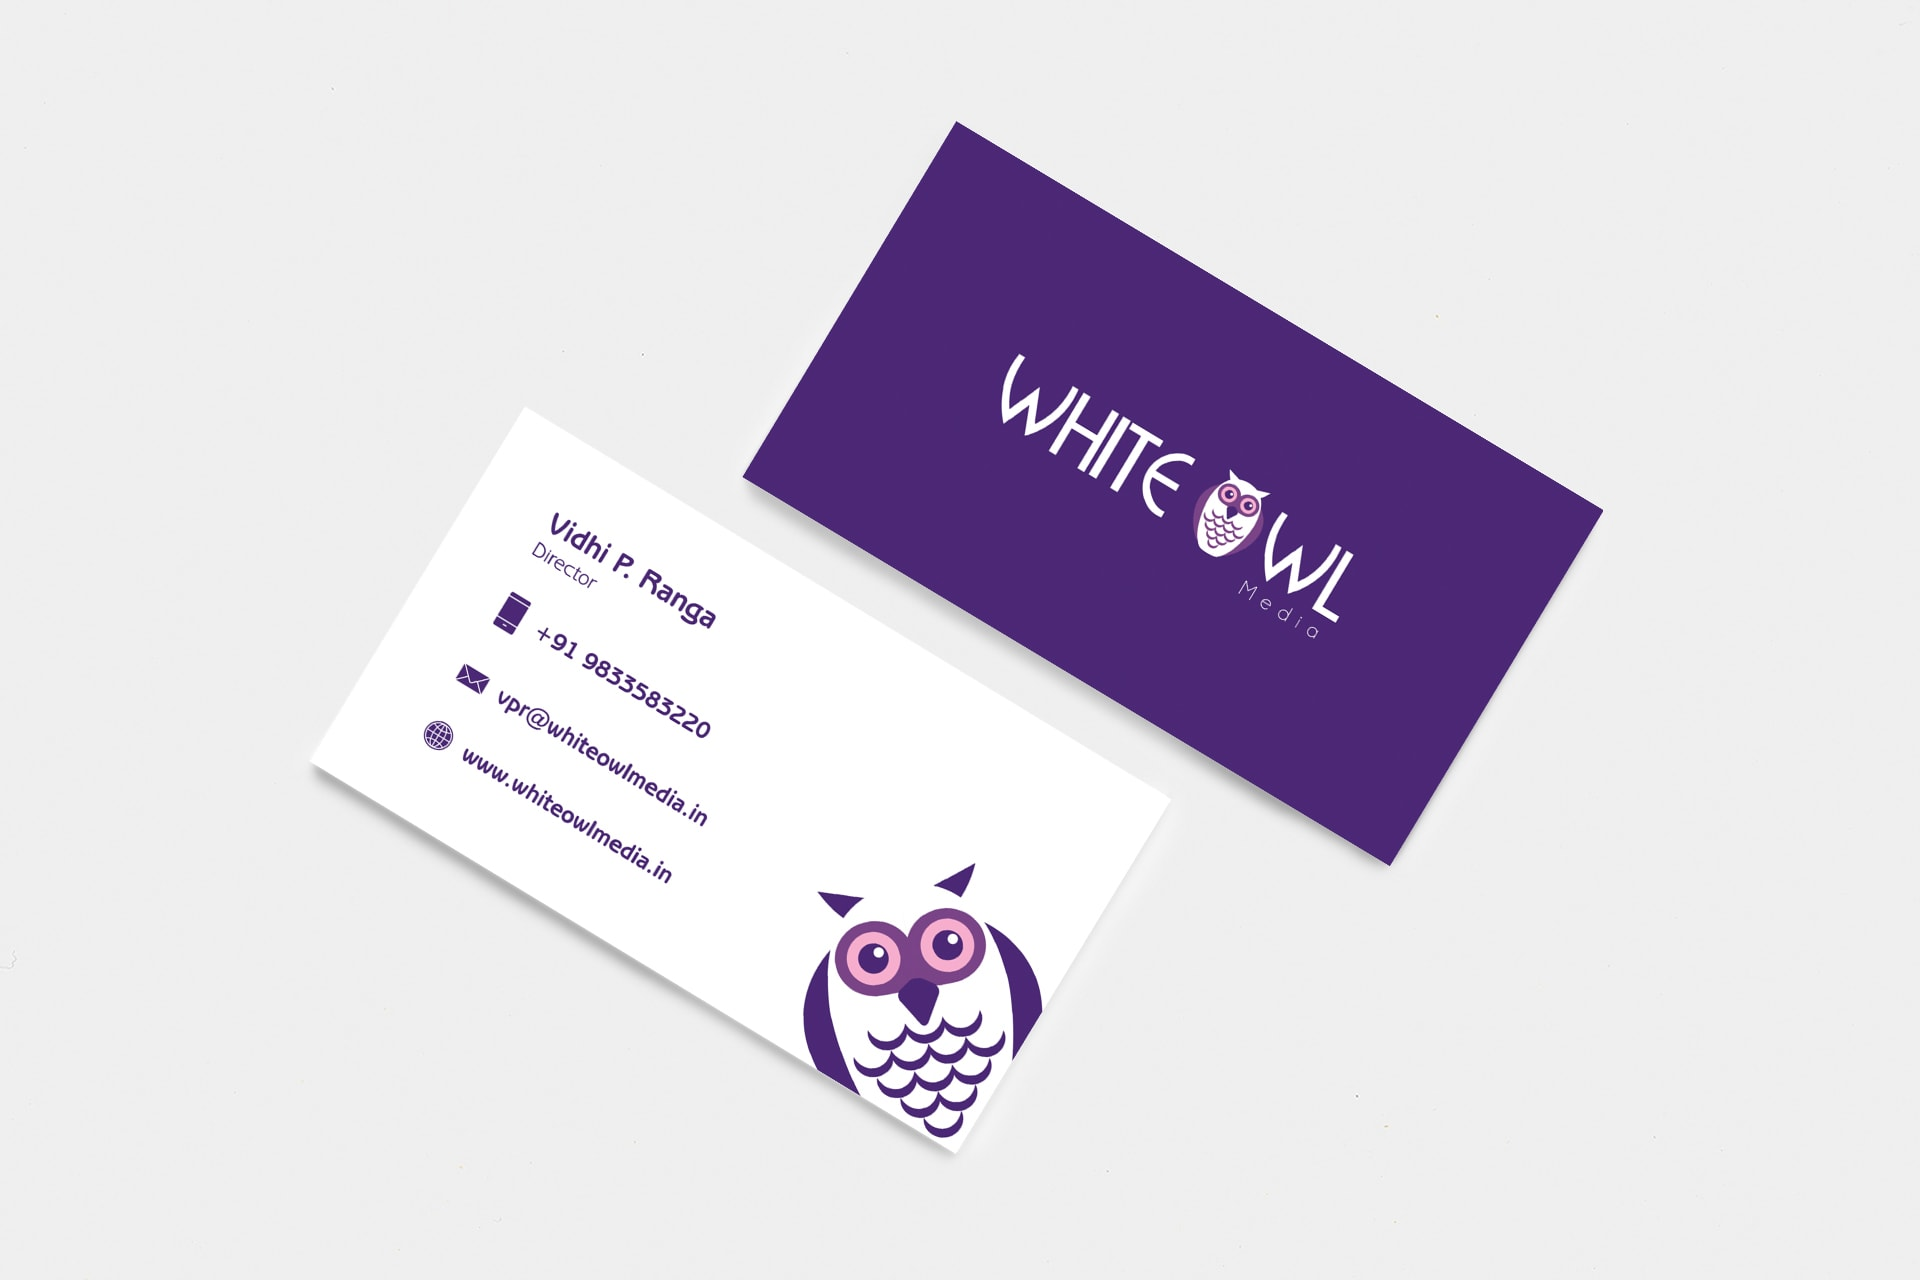 White Owl Media | Bink Media